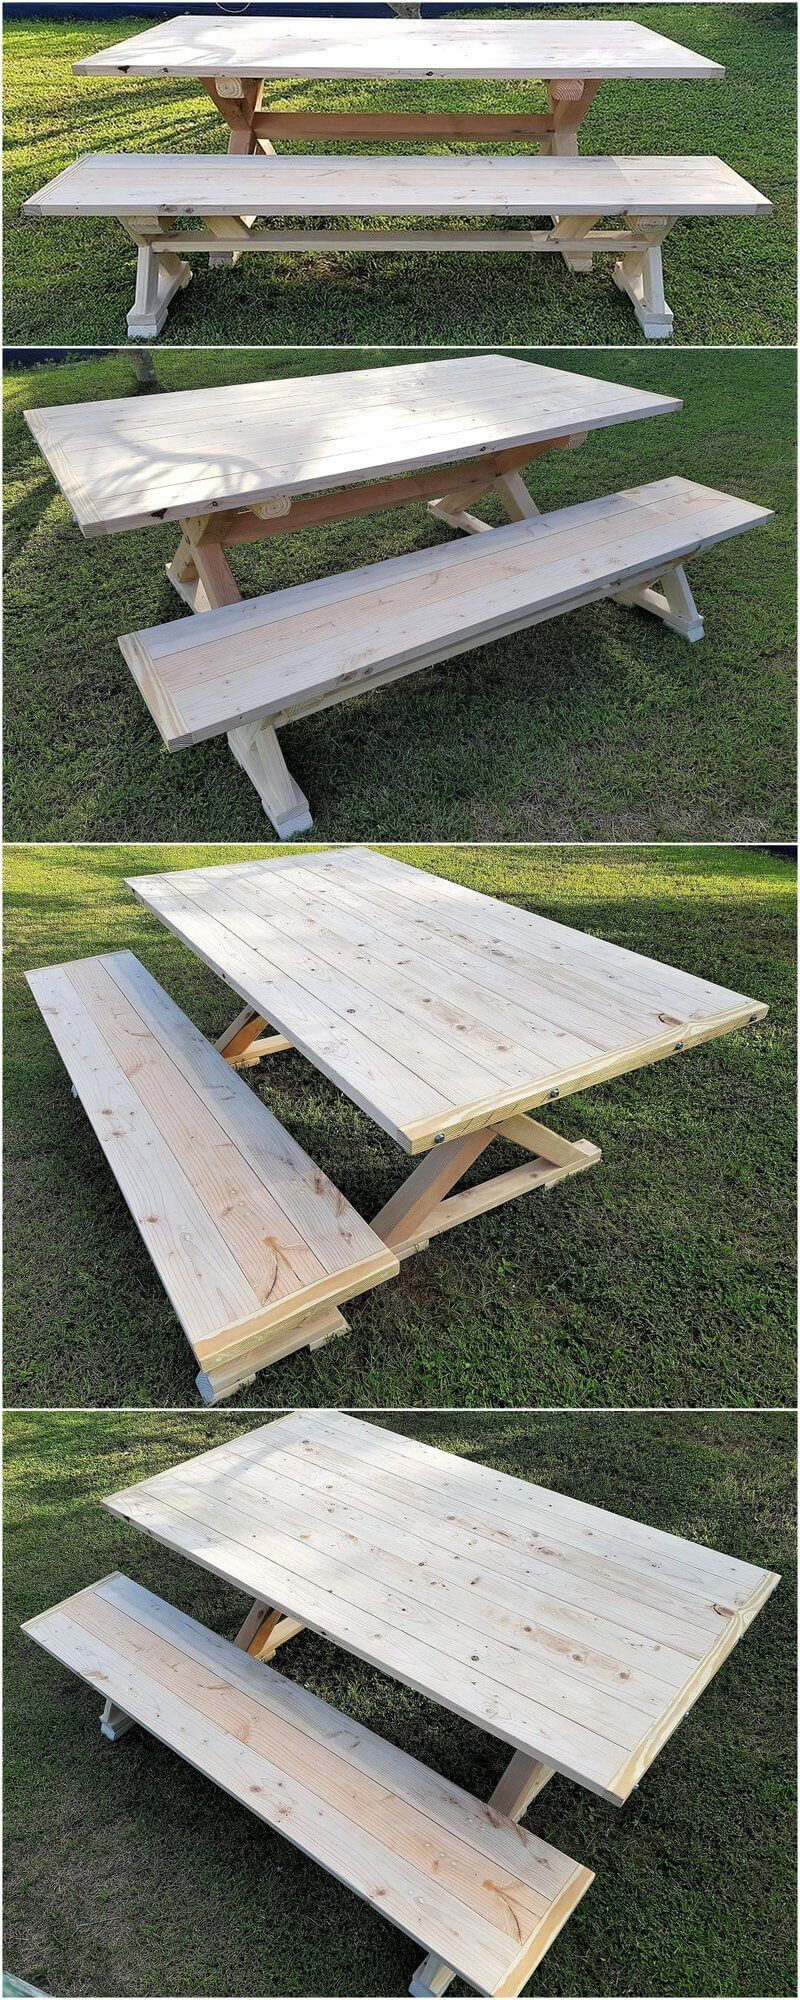 recycled pallets farmhouse style dining table and bench